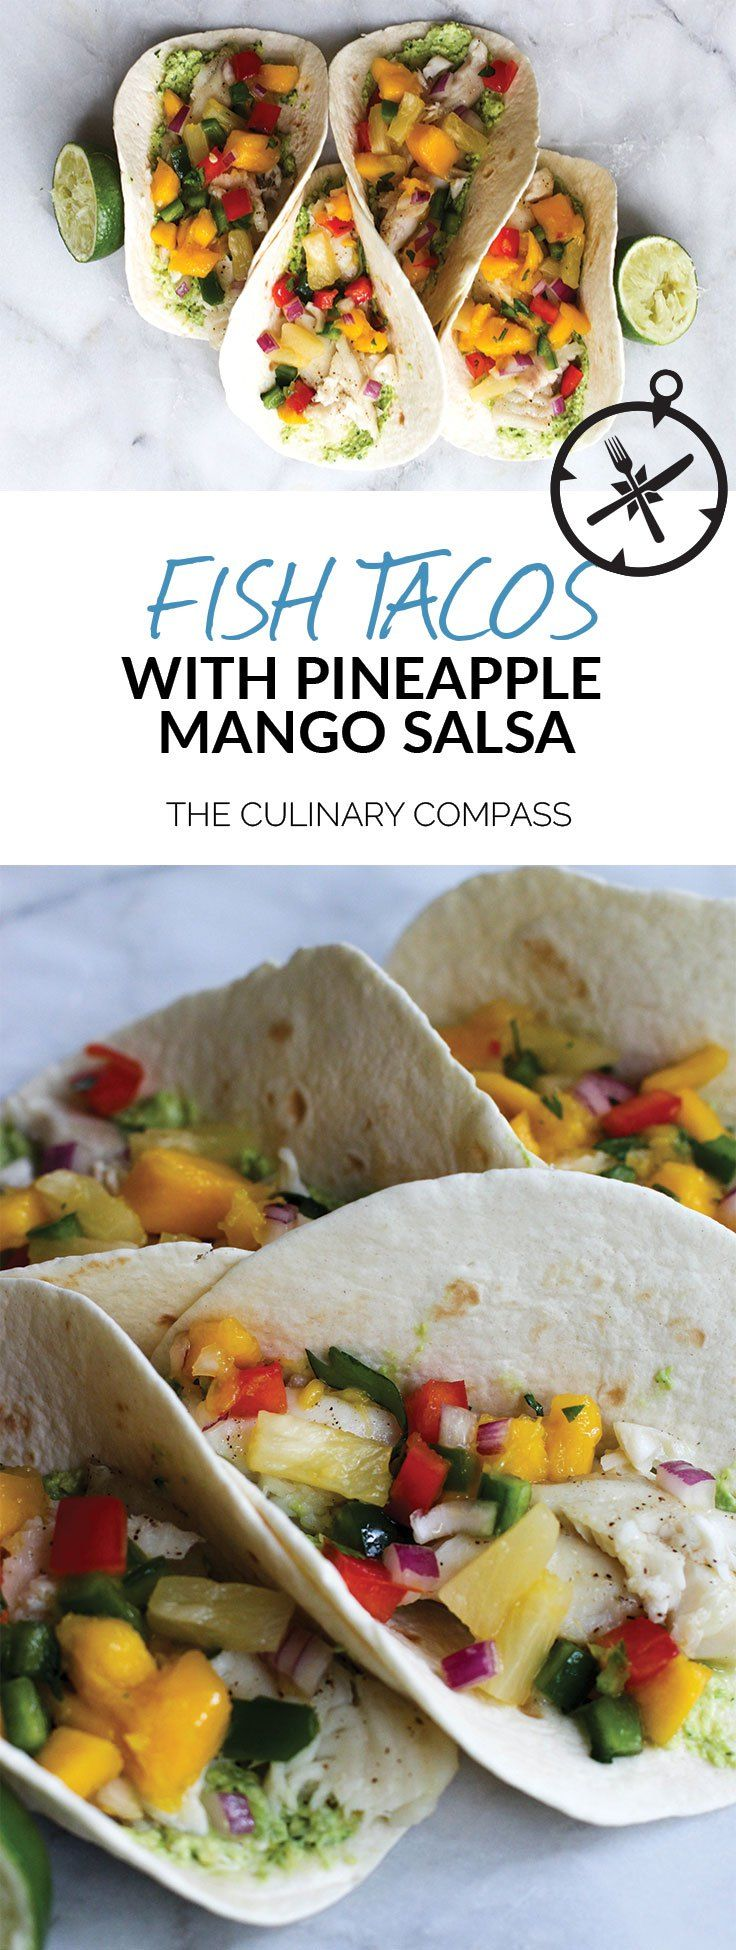 These Fish Tacos with Pineapple Mango Salsa are an easy and flavorful dish for the summer!